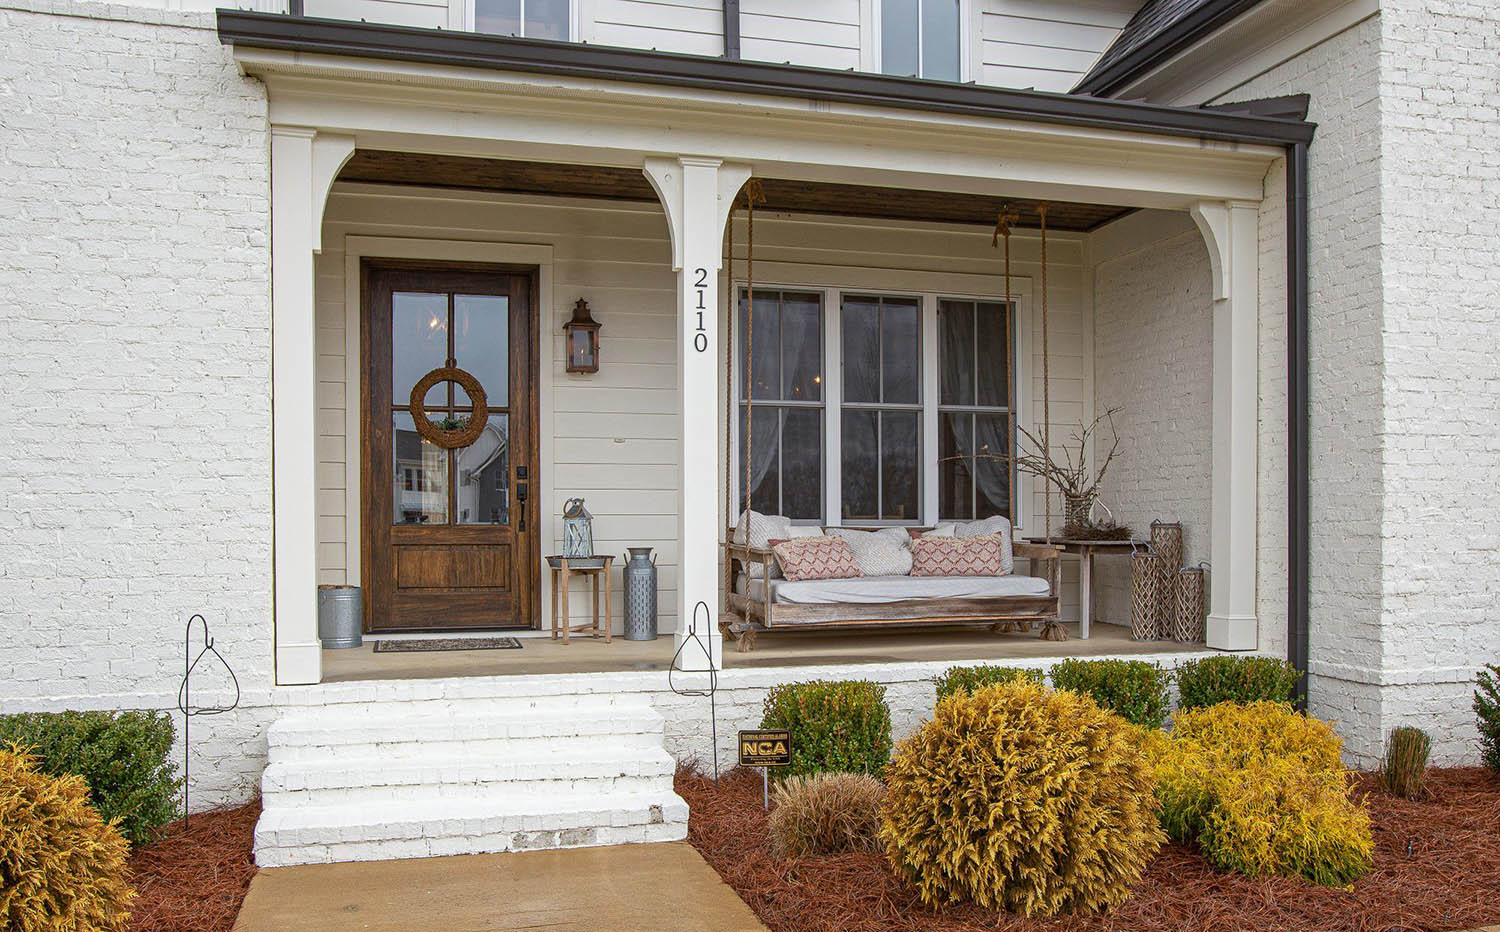 Painted white brick home with country style front porch and swing seat. Real wood soffit and stained wood front door.